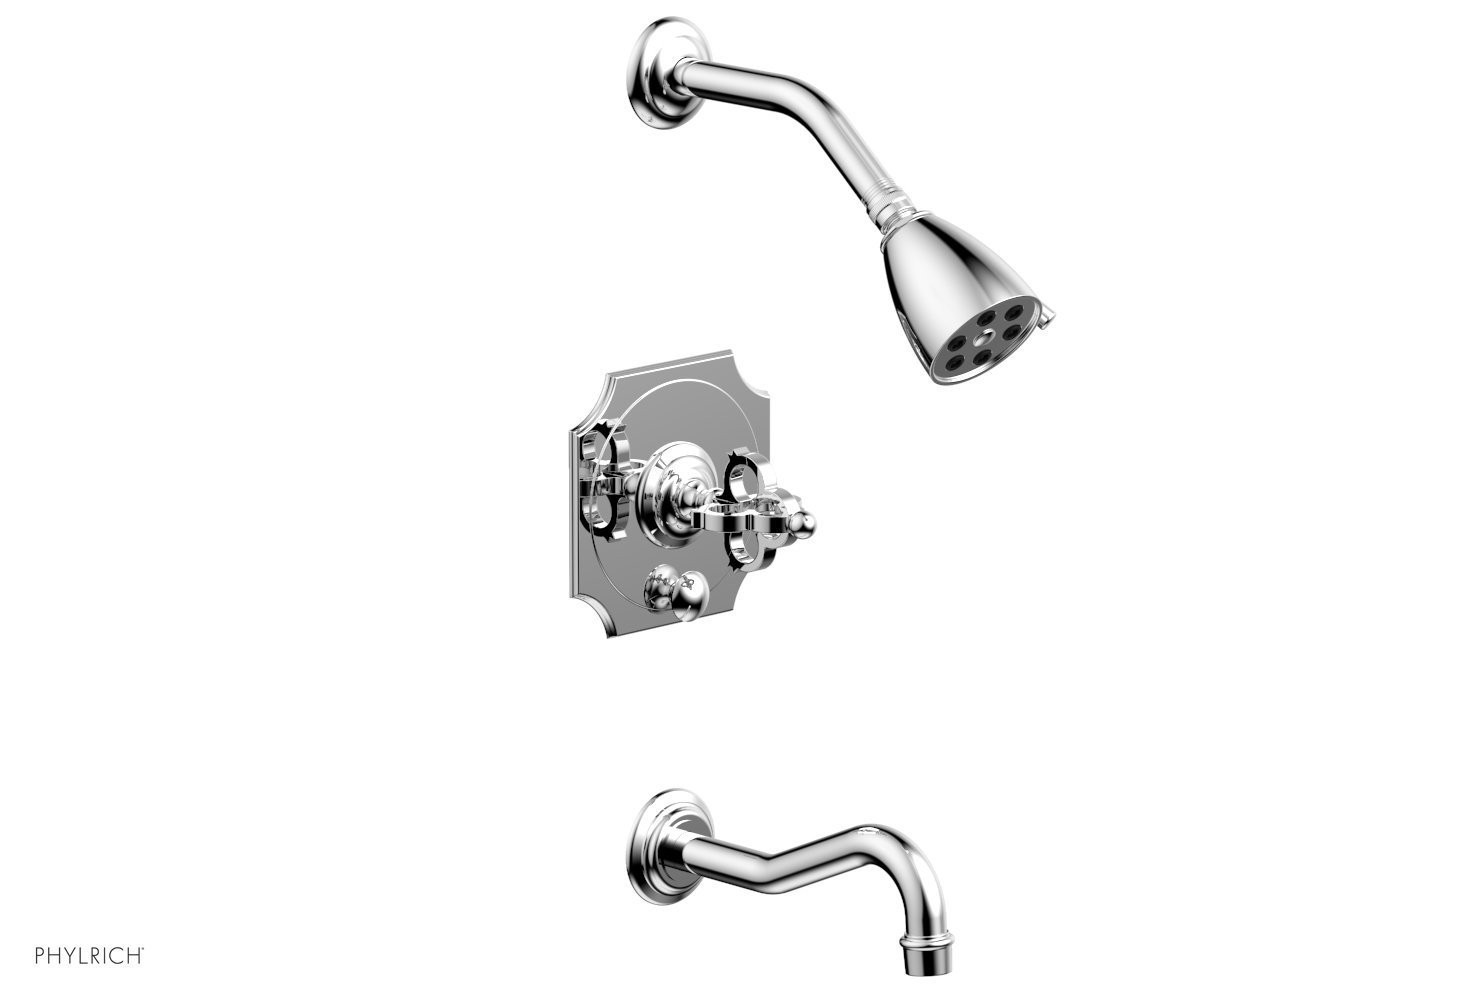 PHYLRICH 163-26 COURONNE WALL MOUNT PRESSURE BALANCE TUB AND SHOWER SET WITH CROSS HANDLE